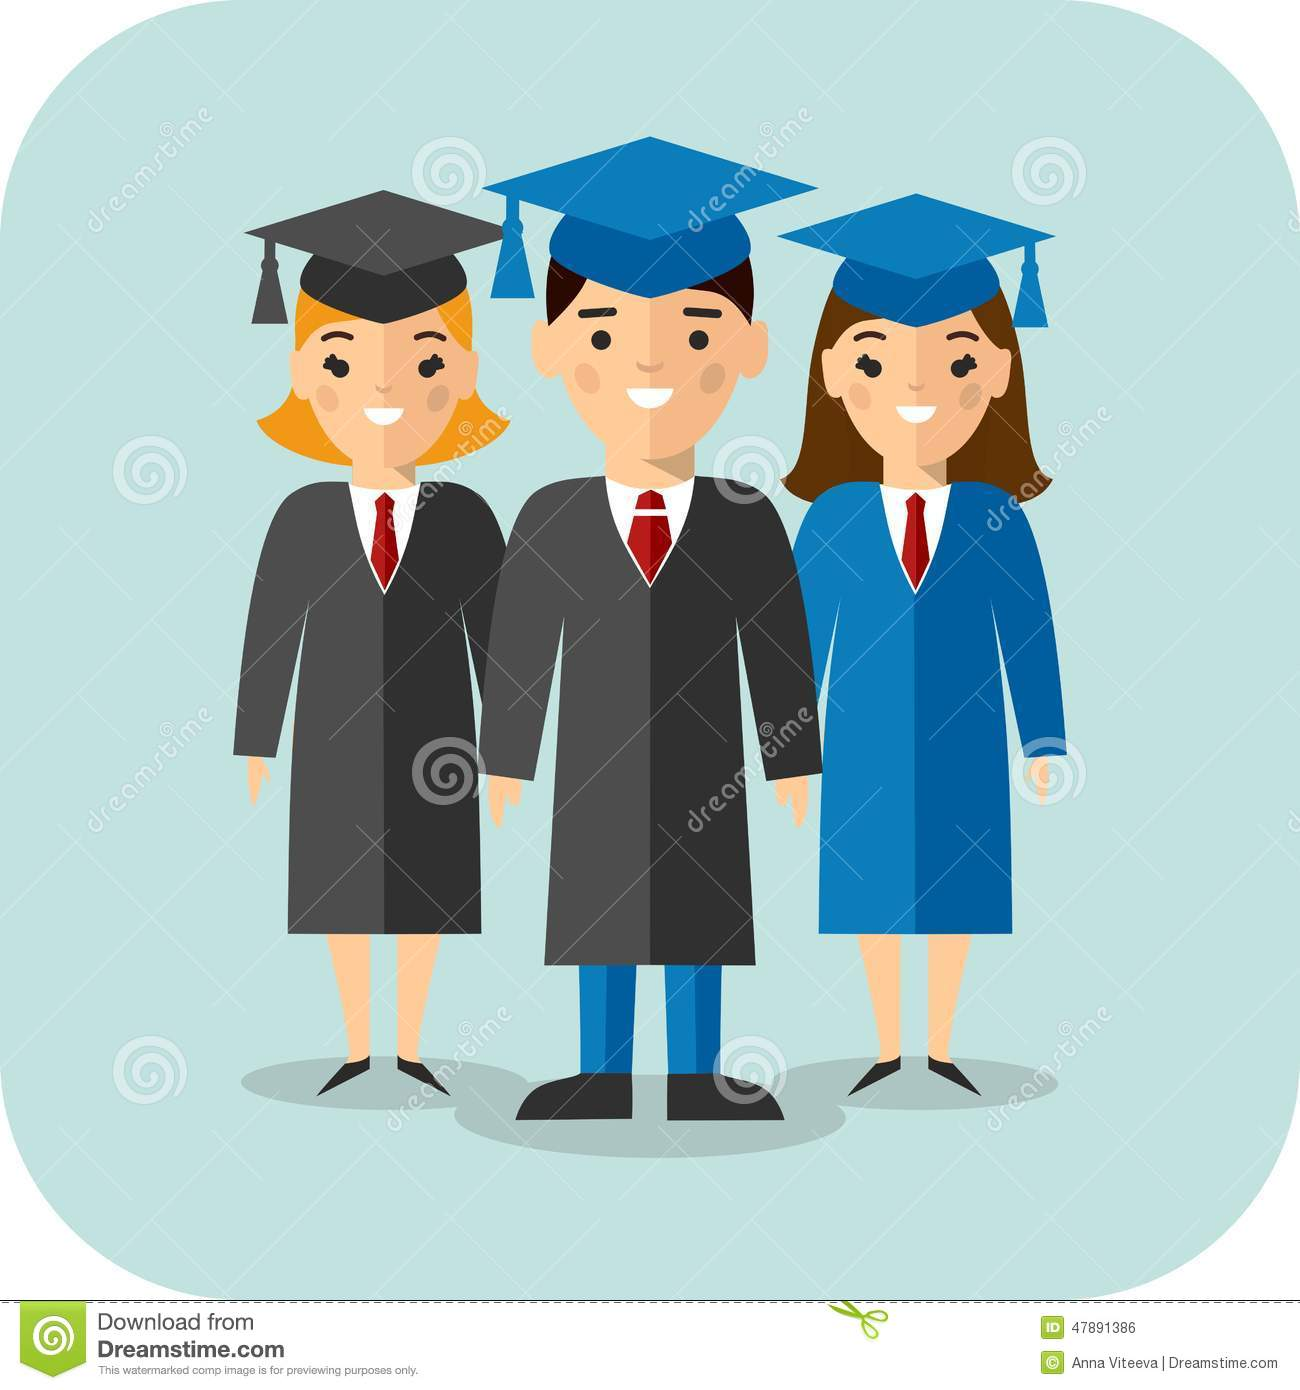 Set Of Students In Graduation Gown And Mortarboard Illustration ...